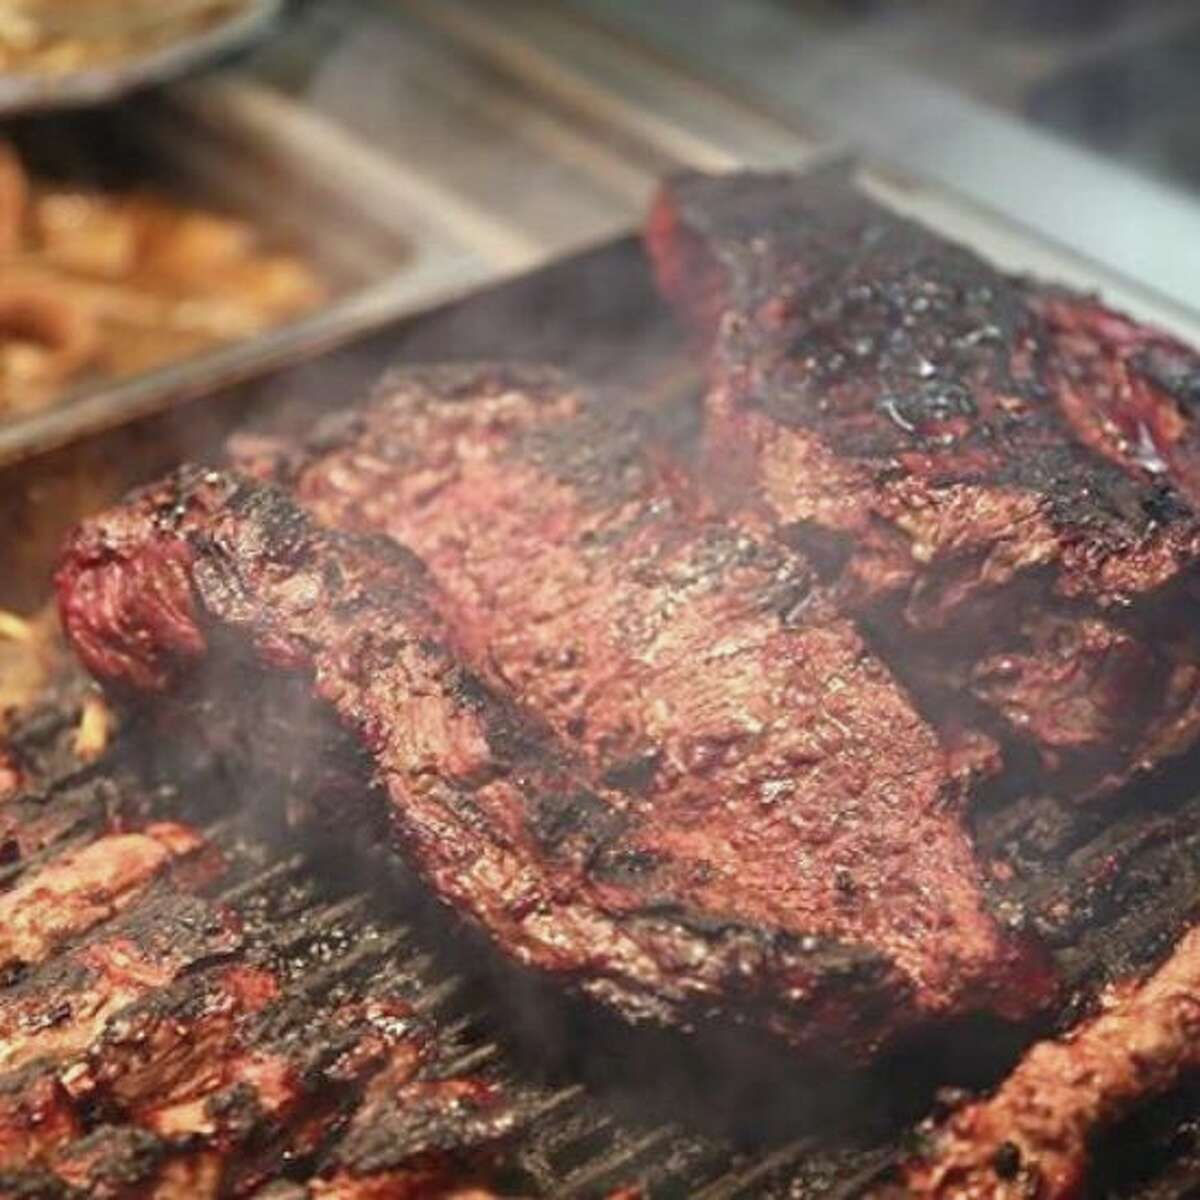 Butcher Boys Menu items: Steak sandwich $11, Italian sausage grinder $11, chicken pita $11, fried pickle slices $7 Available Sept. 22-27 Find out more